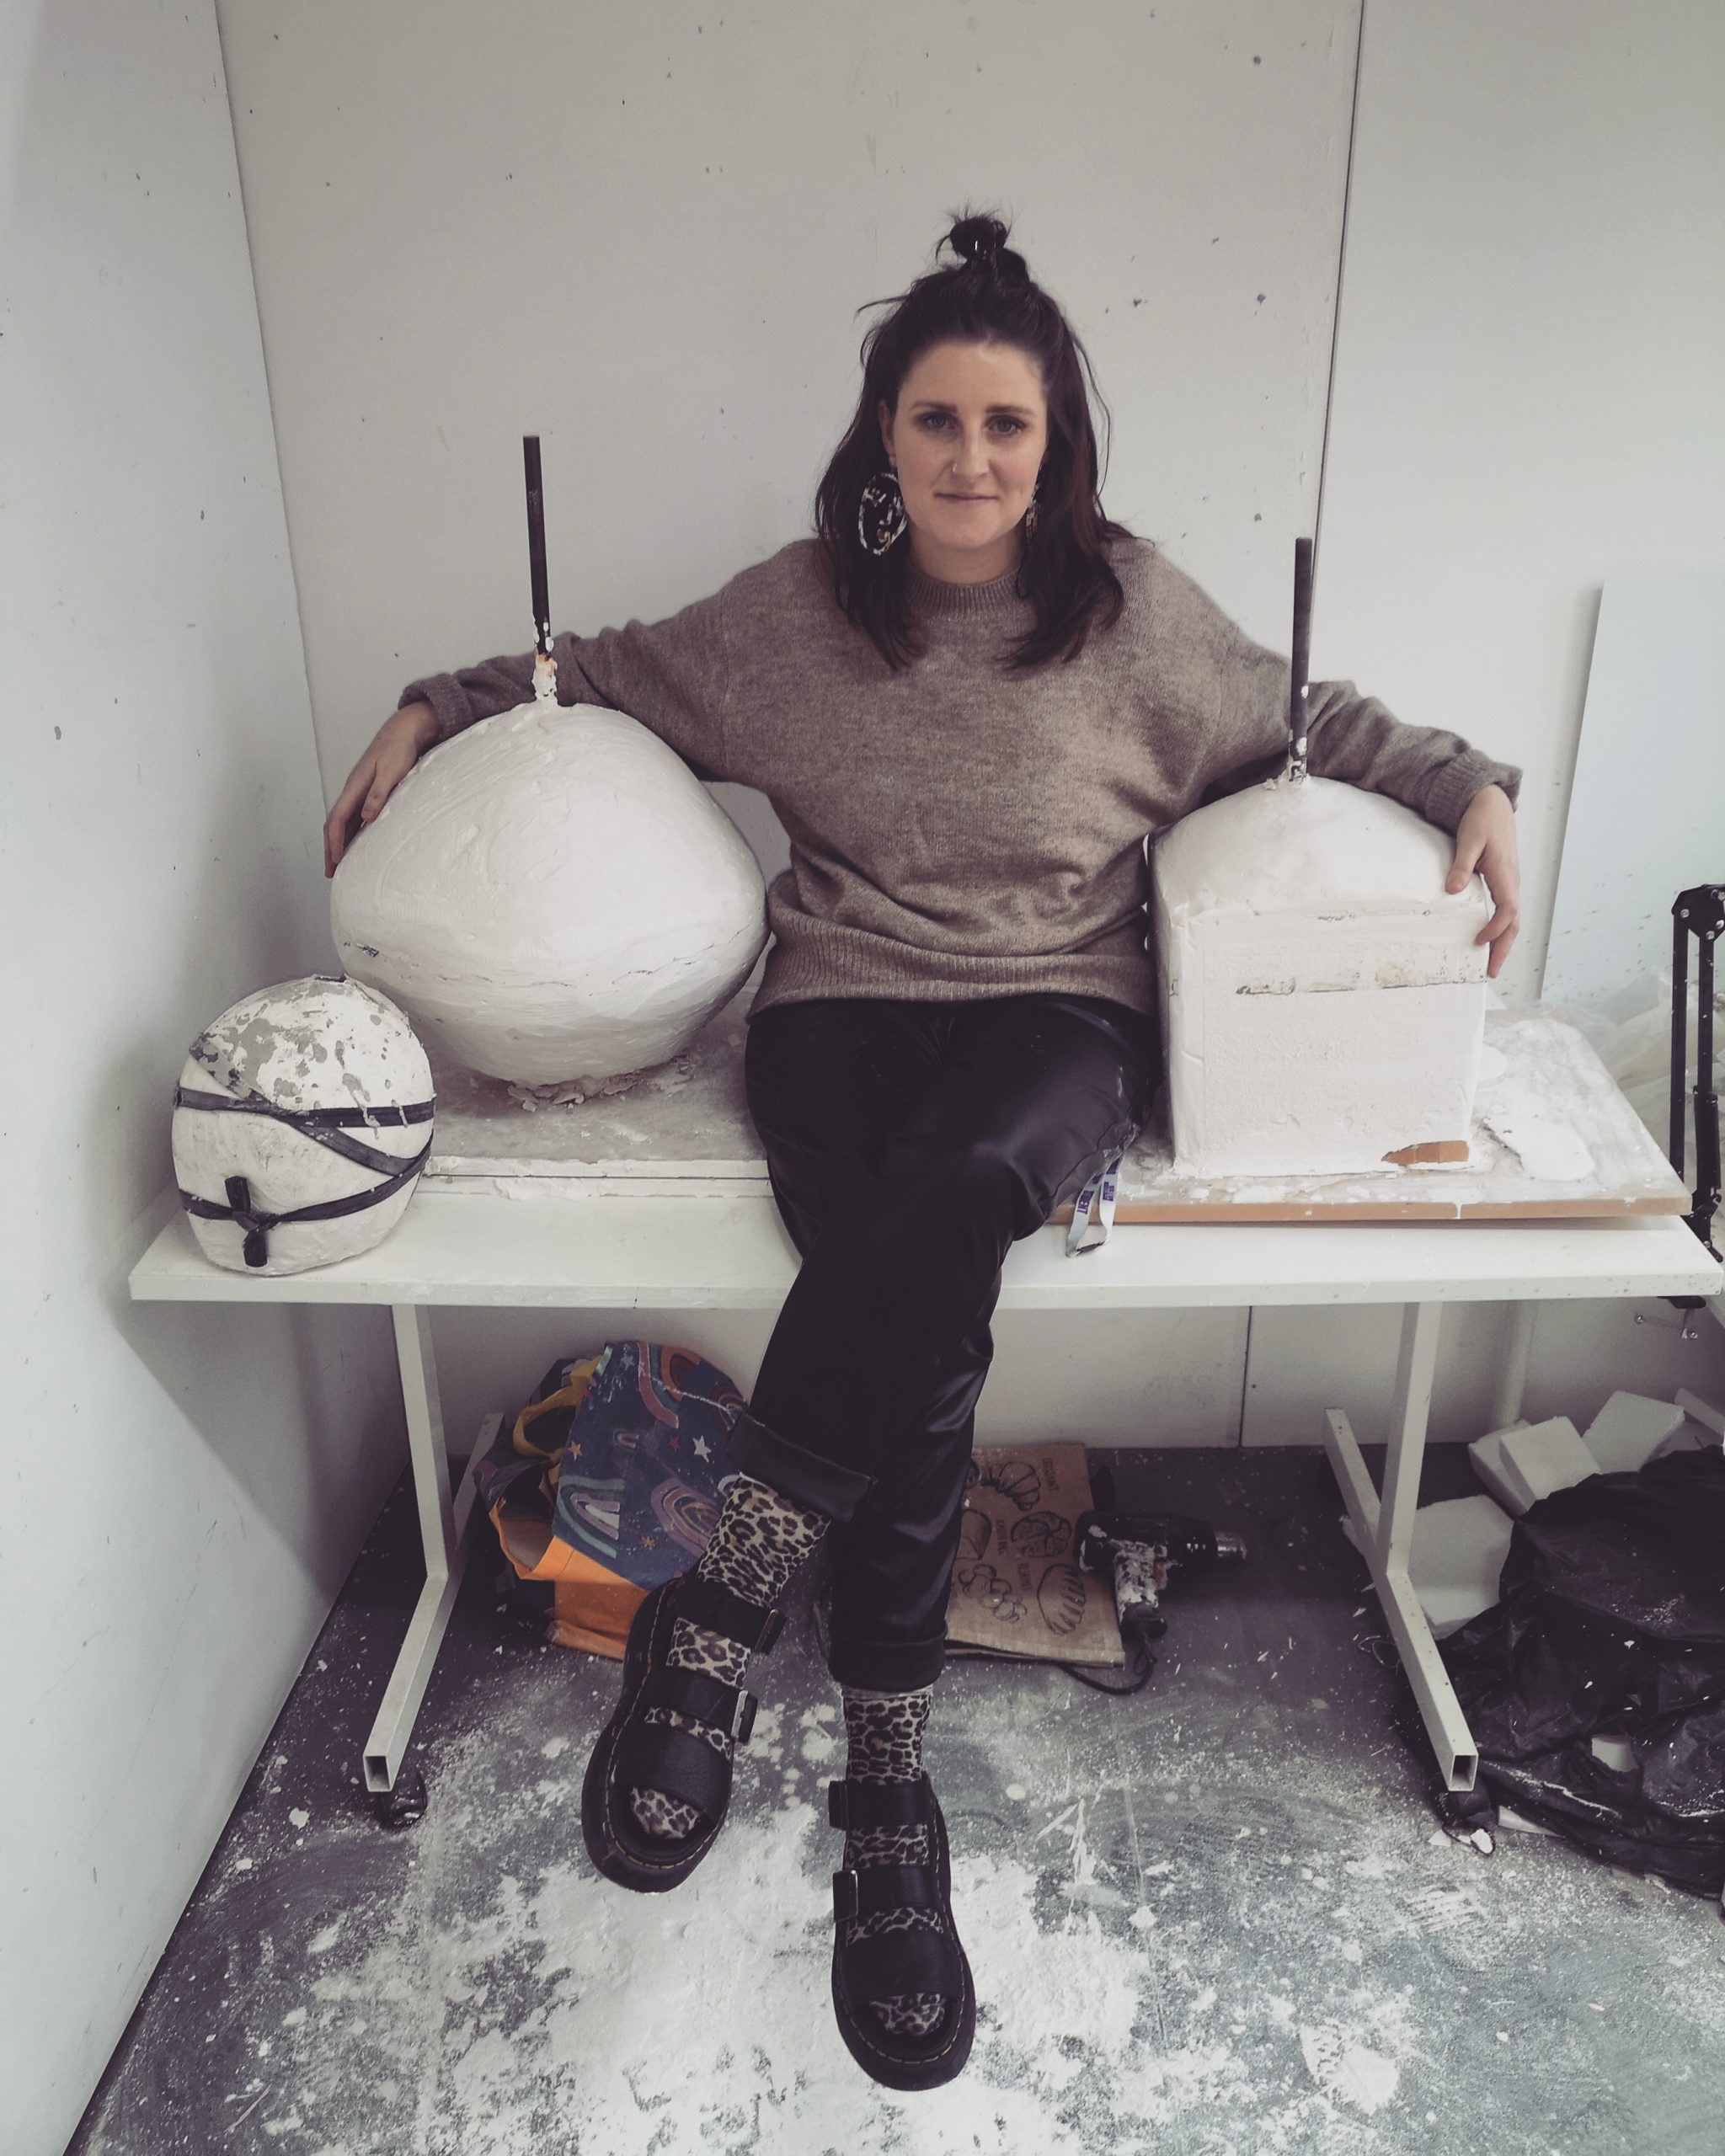 Lynsey sitting on a table in a sculpture workshop surrounded by clay items.